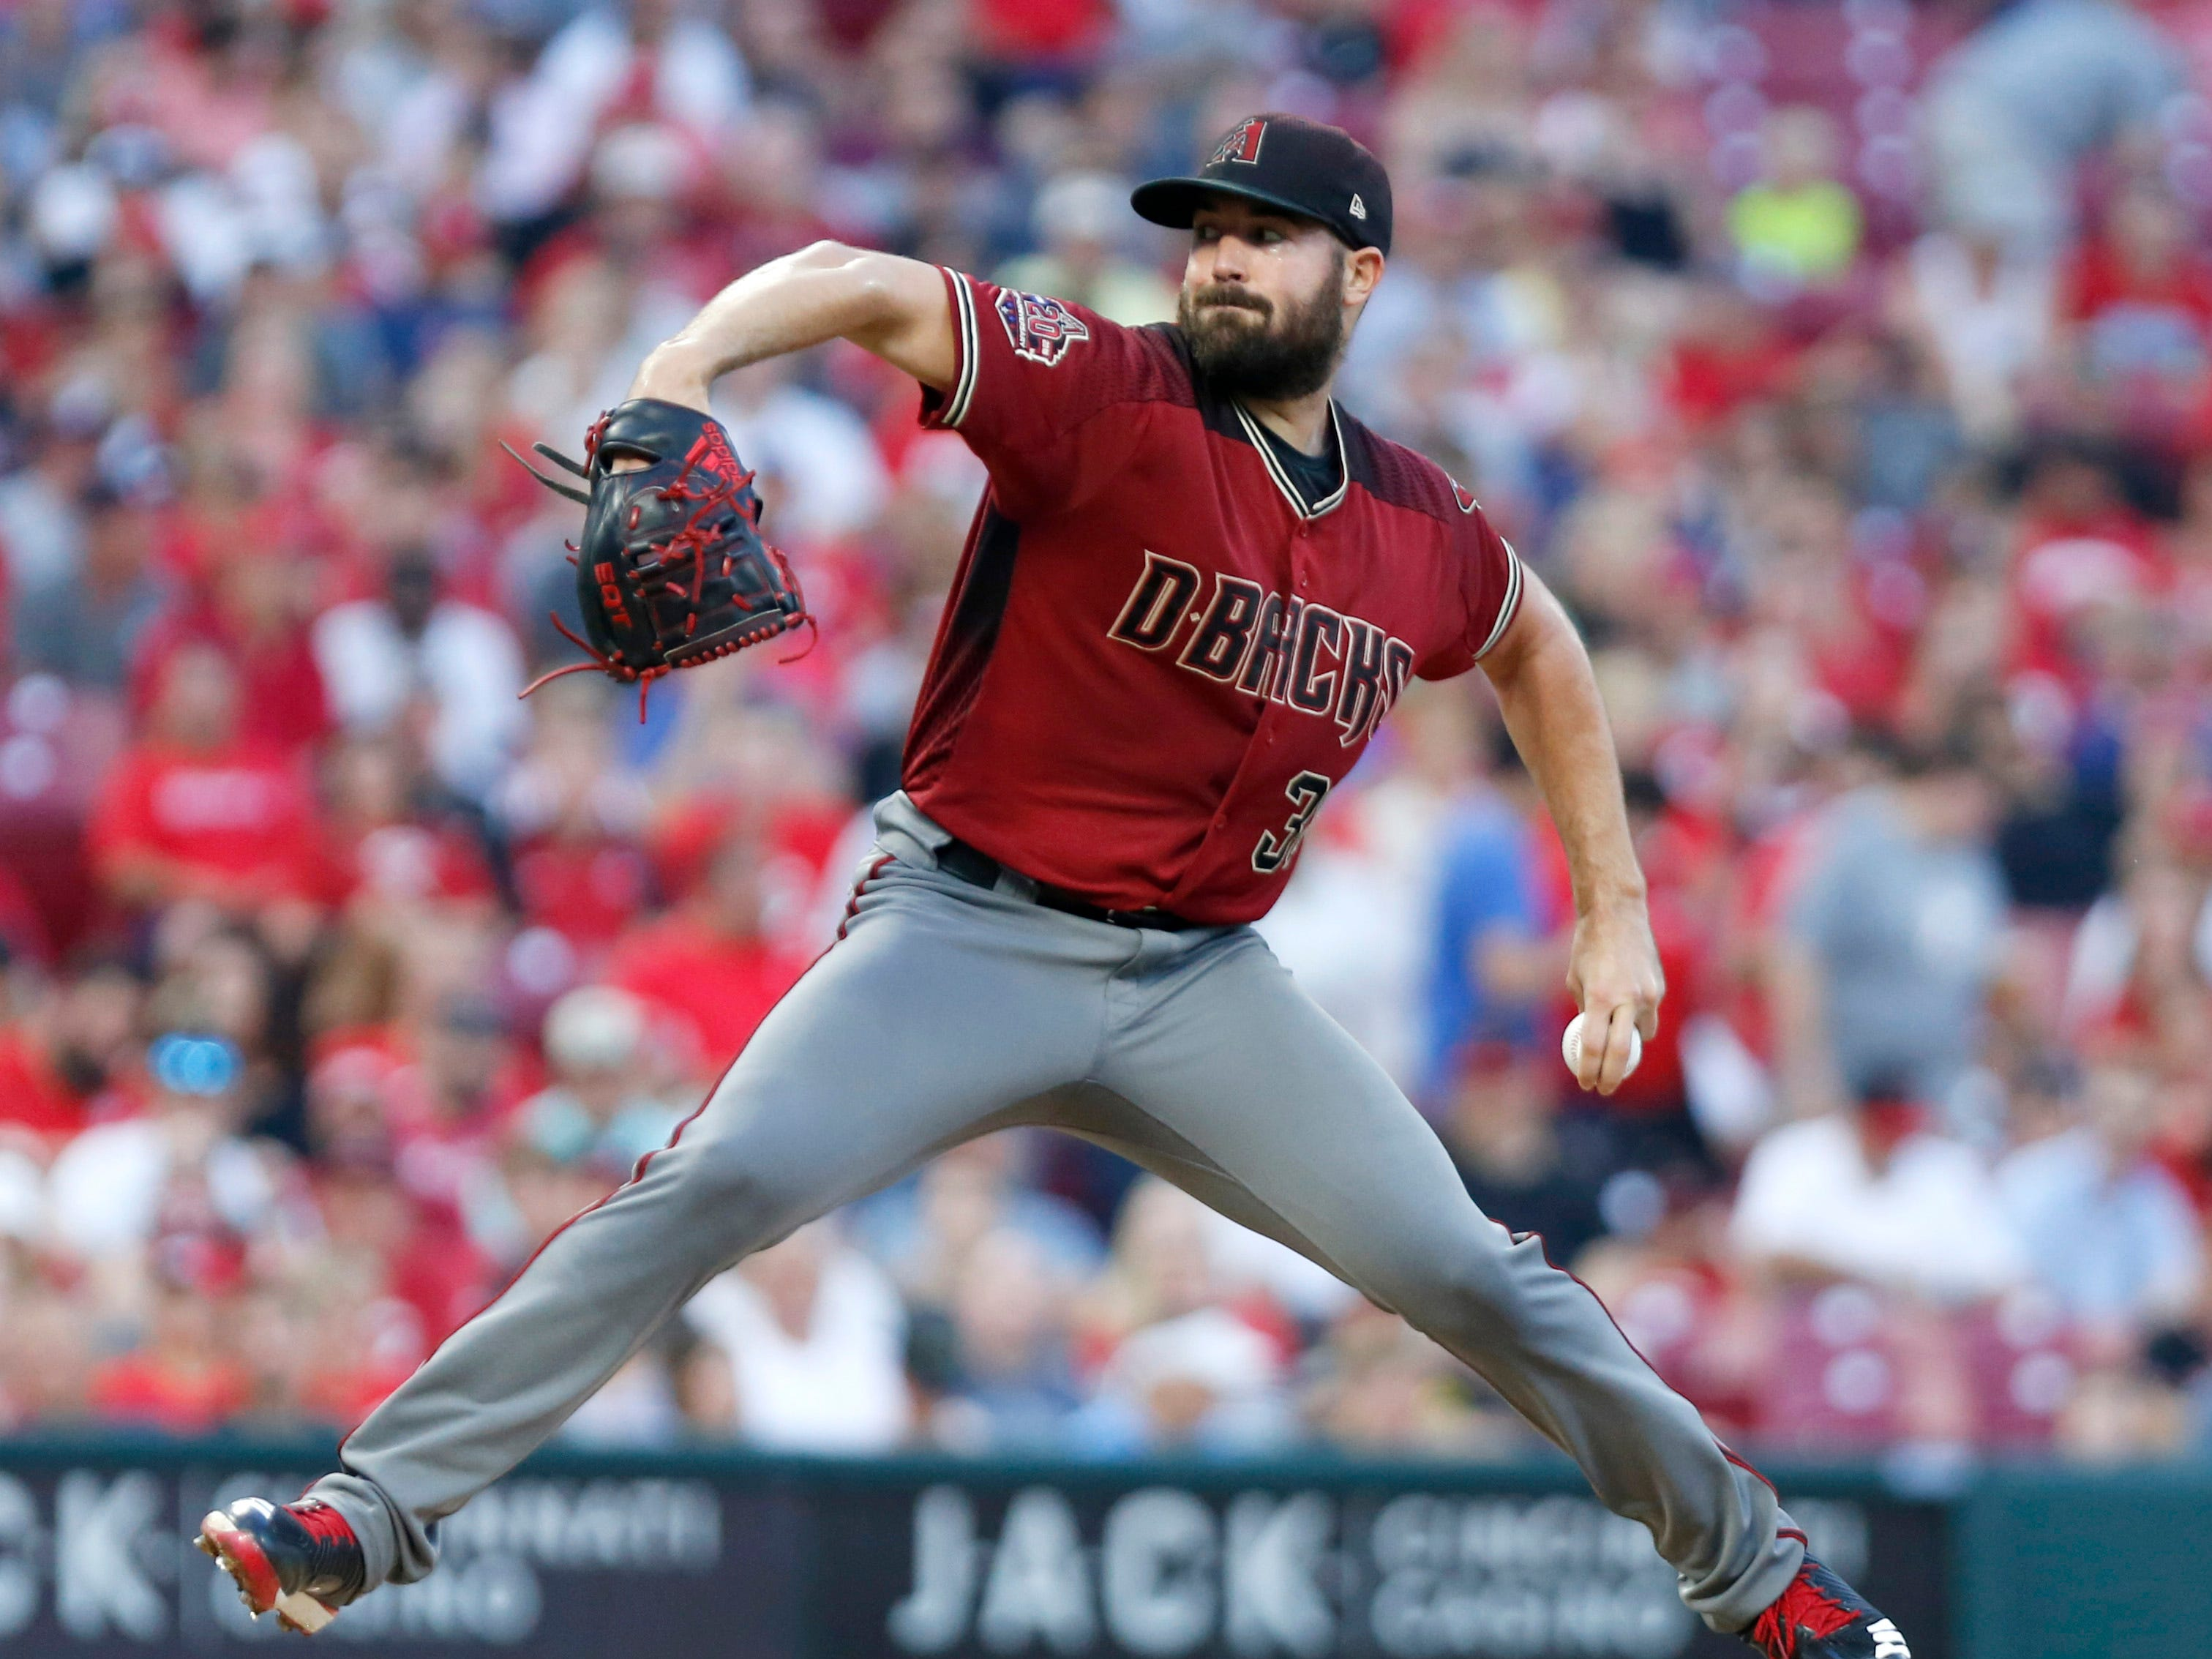 Aug 11, 2018; Cincinnati, OH, USA; Arizona Diamondbacks starting pitcher Robbie Ray (38) throws against the Cincinnati Reds during the first inning at Great American Ball Park. Mandatory Credit: David Kohl-USA TODAY Sports